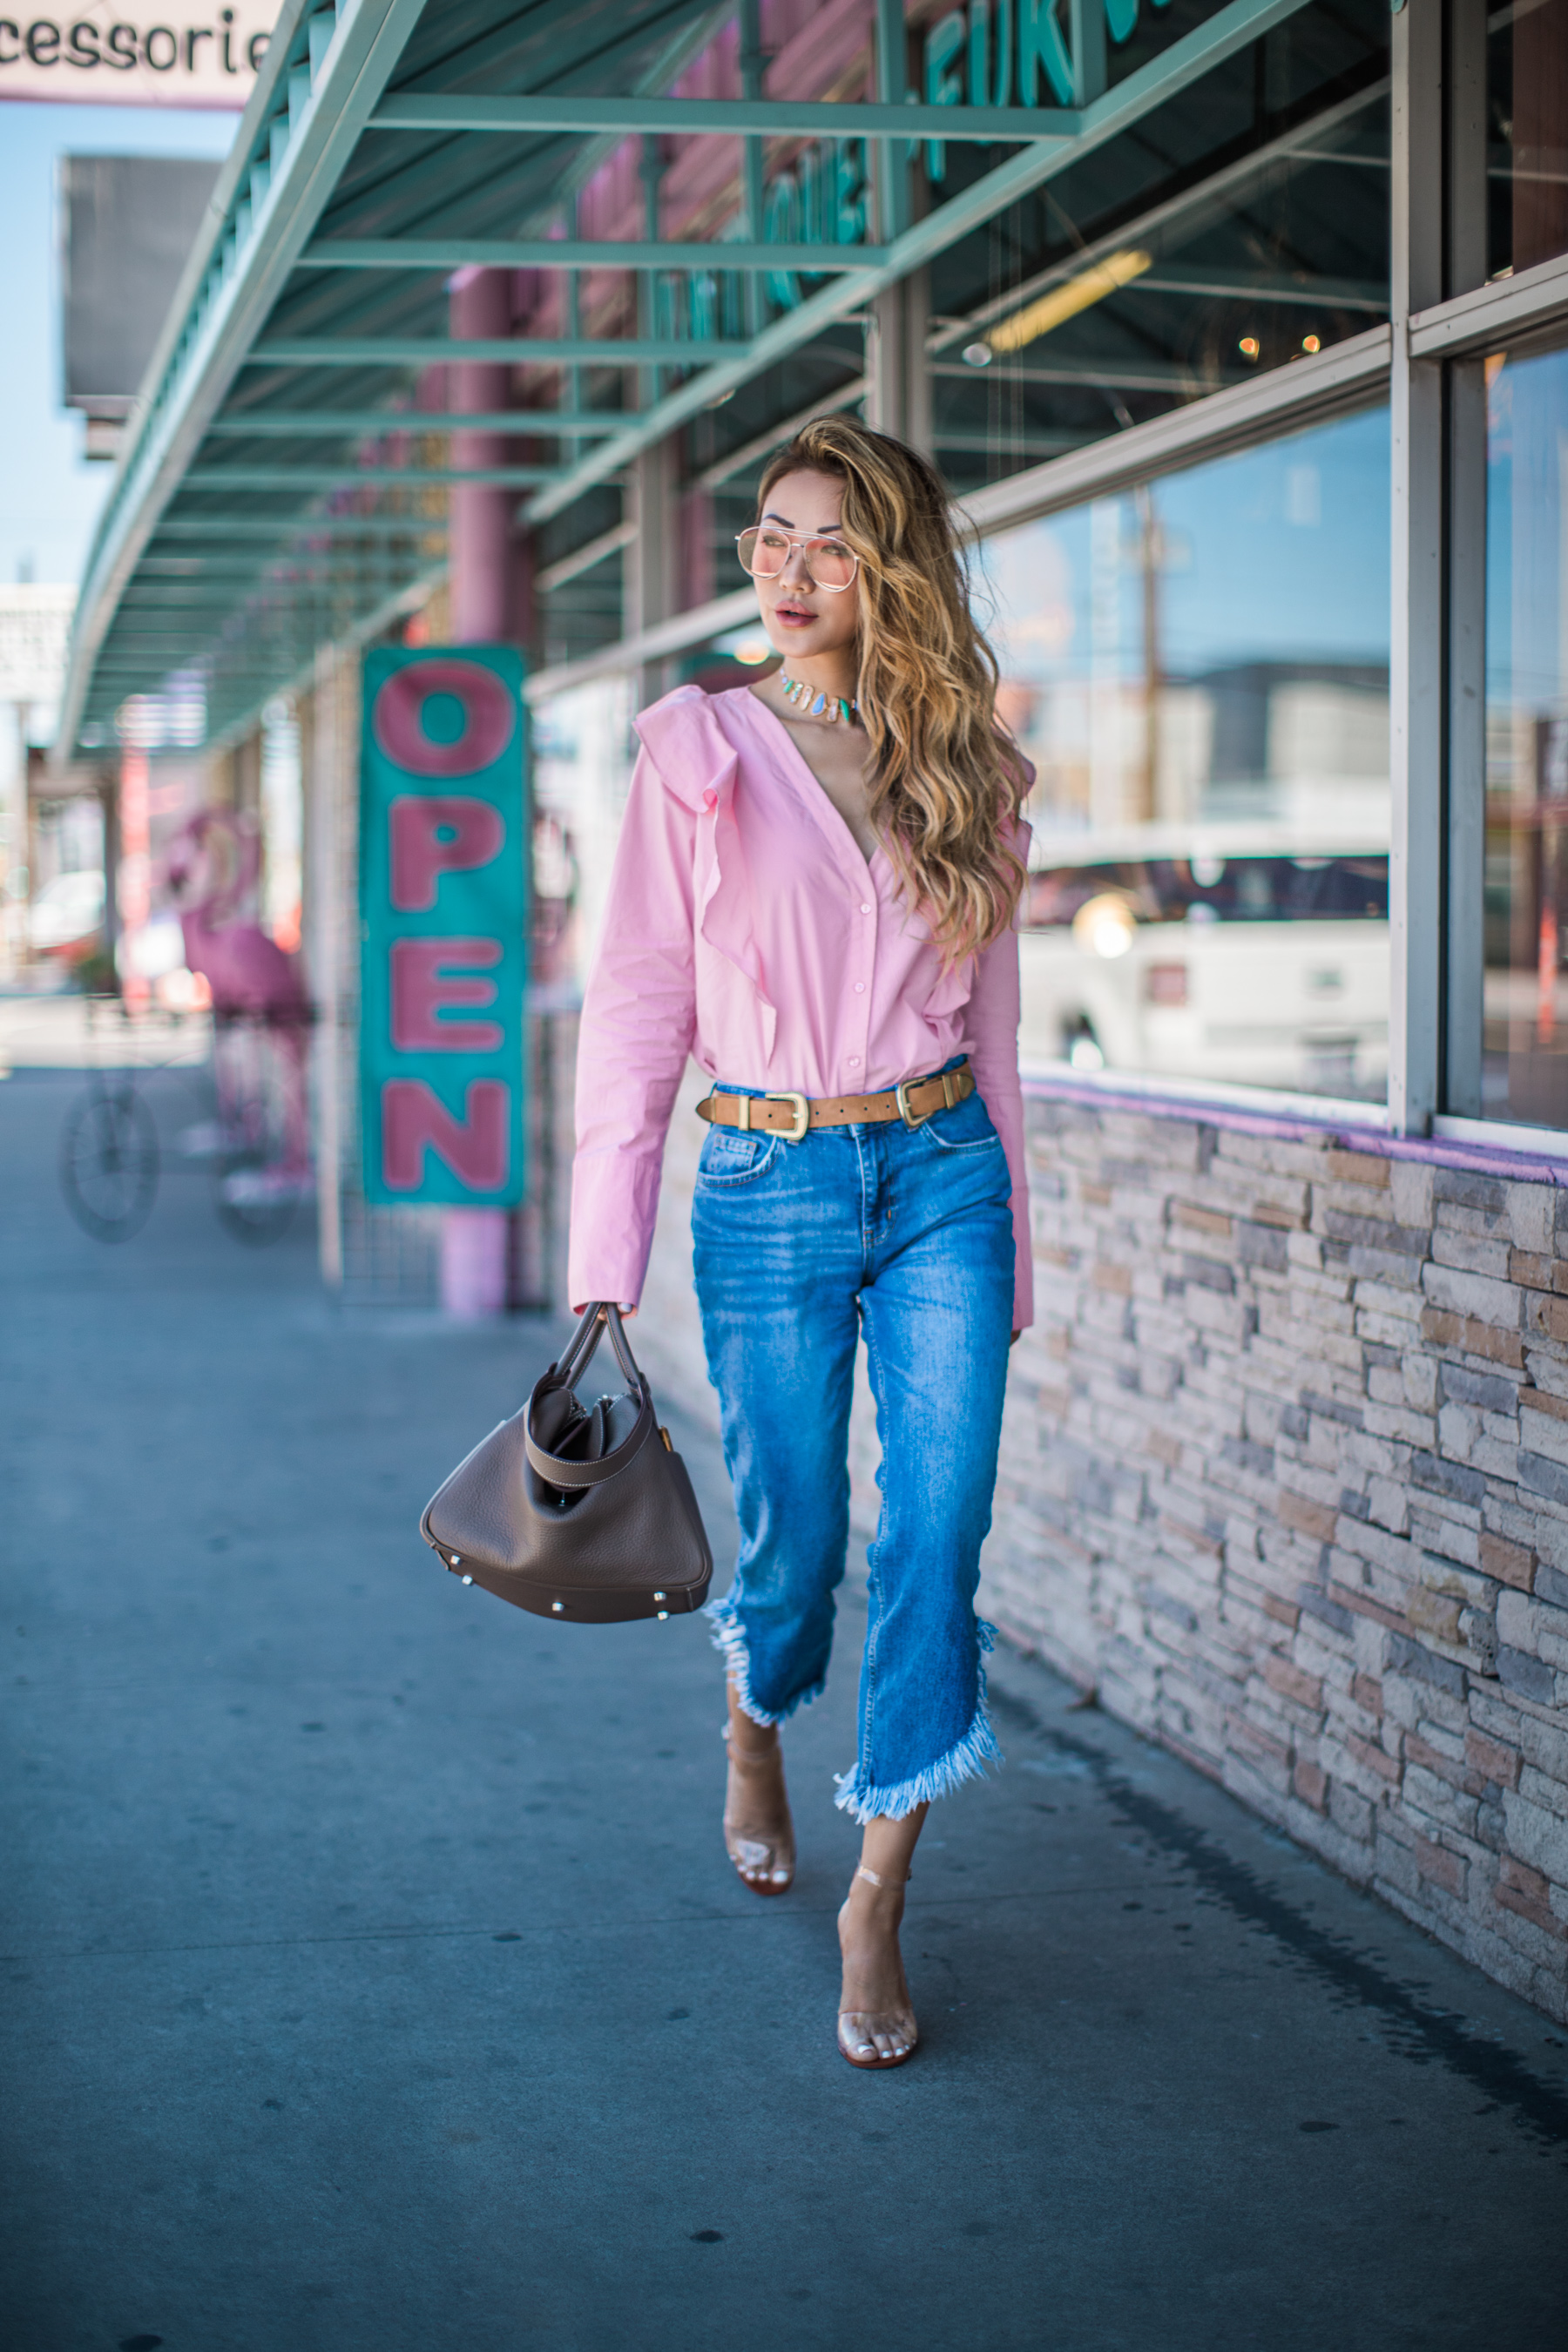 Trending Jeans for Spring - raw hem jeans, high-waisted jeans, denim outfits // Notjessfashion.com